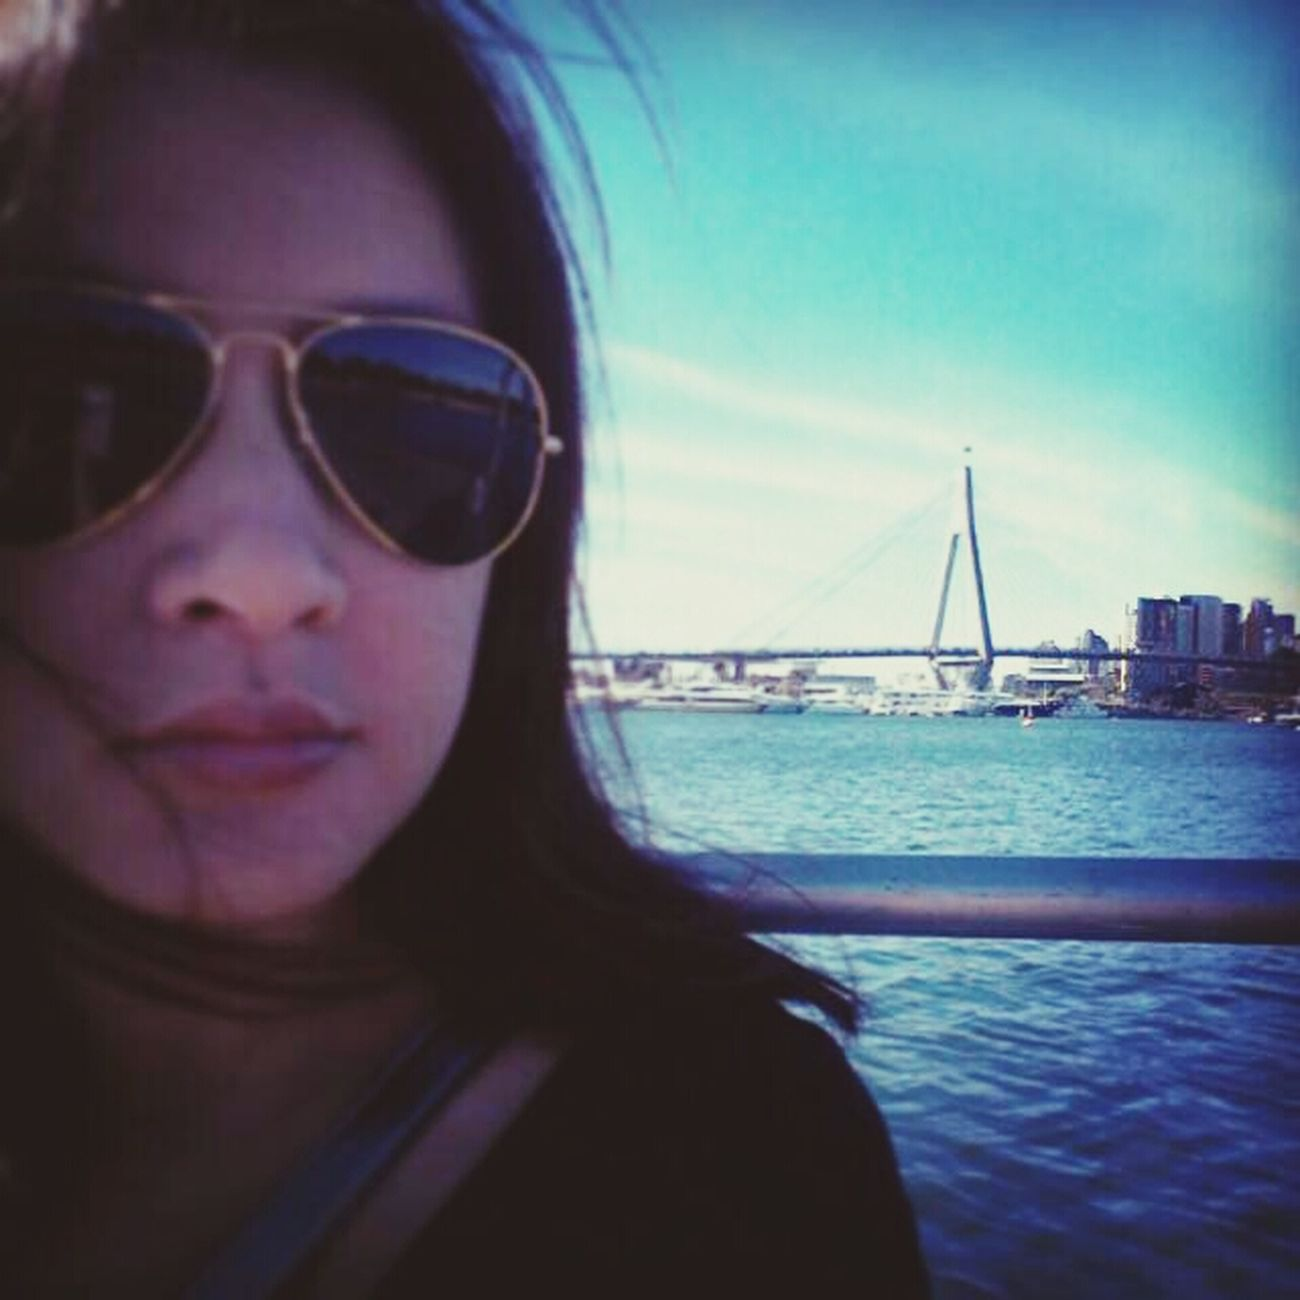 missyou mom. i'll be there soon. wait for me. New South Wales,Sydney Australia Selfie ♥ Queenofheart My Moms - ILoveYou.♡